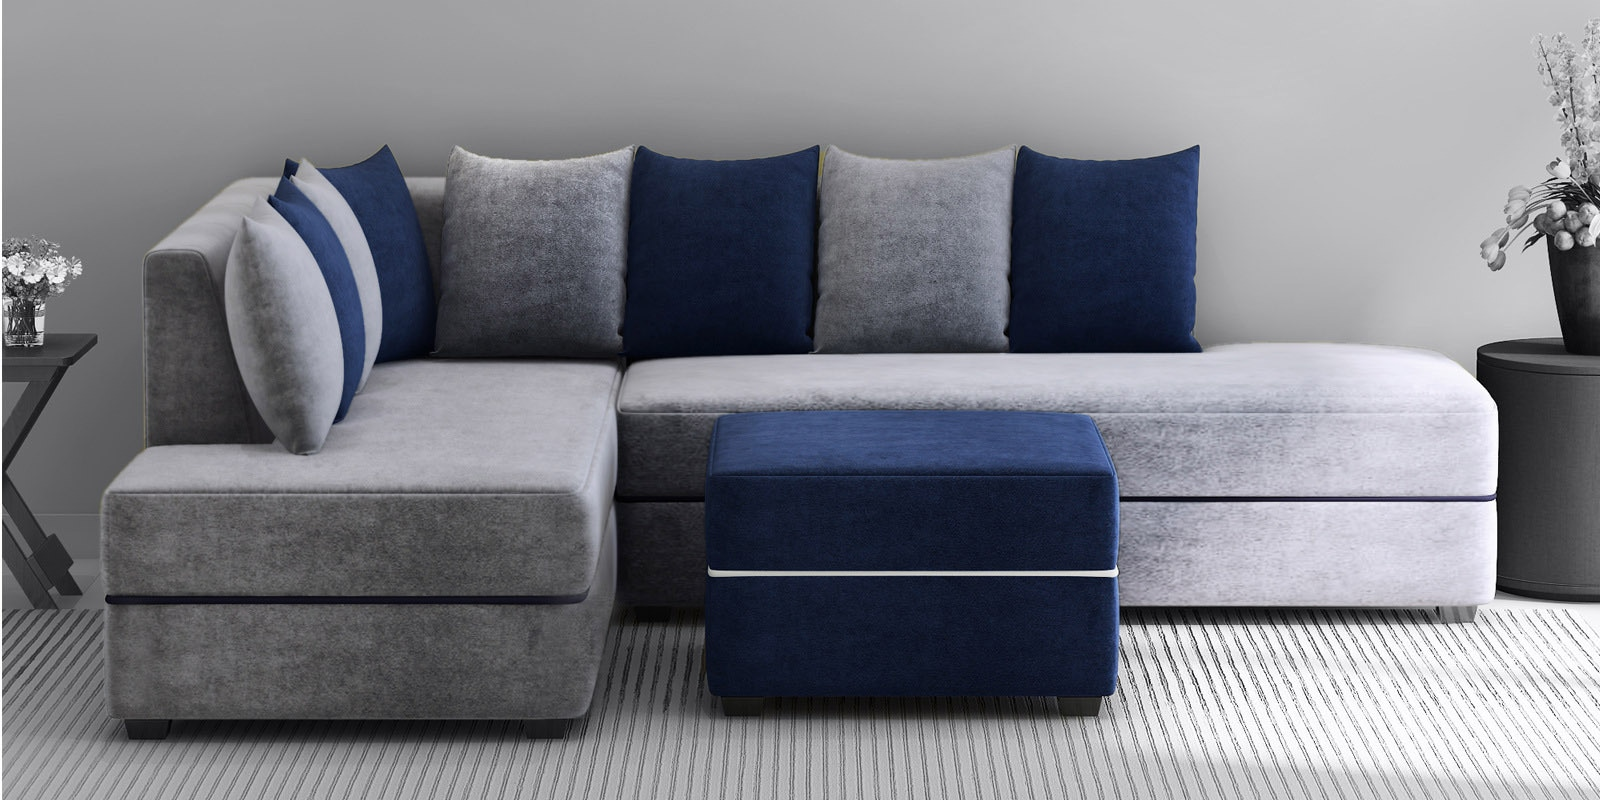 Buy Apollo Rhs Sectional Sofa With Ottoman In Grey Blue Colour By Evok Online Modern Rhs Sectional Sofas Sectional Sofas Furniture Pepperfry Product